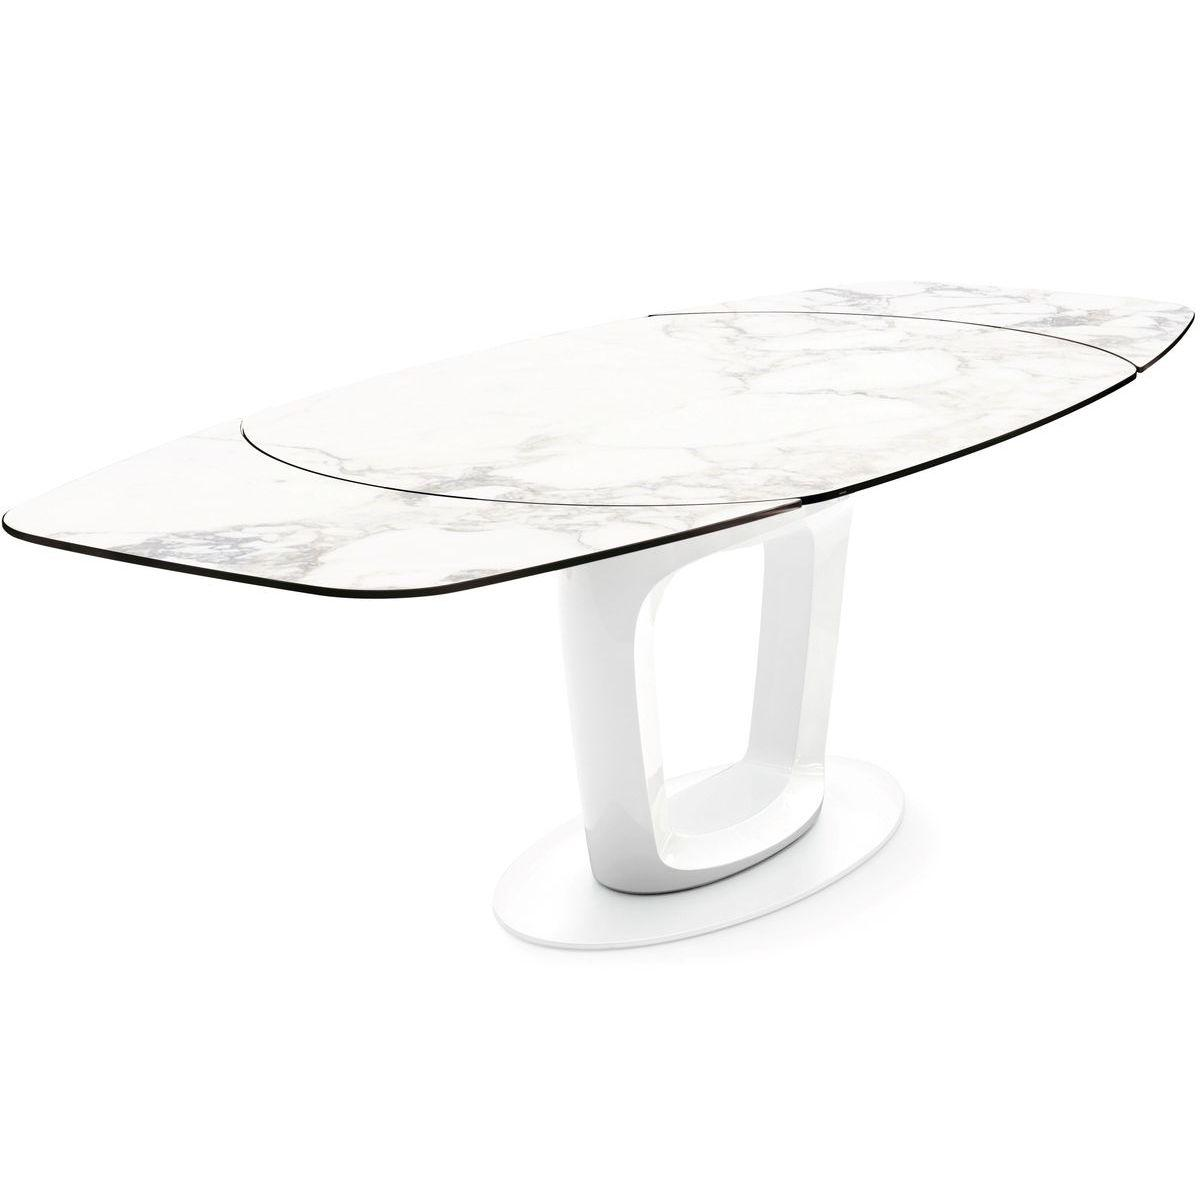 Table à rallonge ORBITAL Calligaris marbre blanc